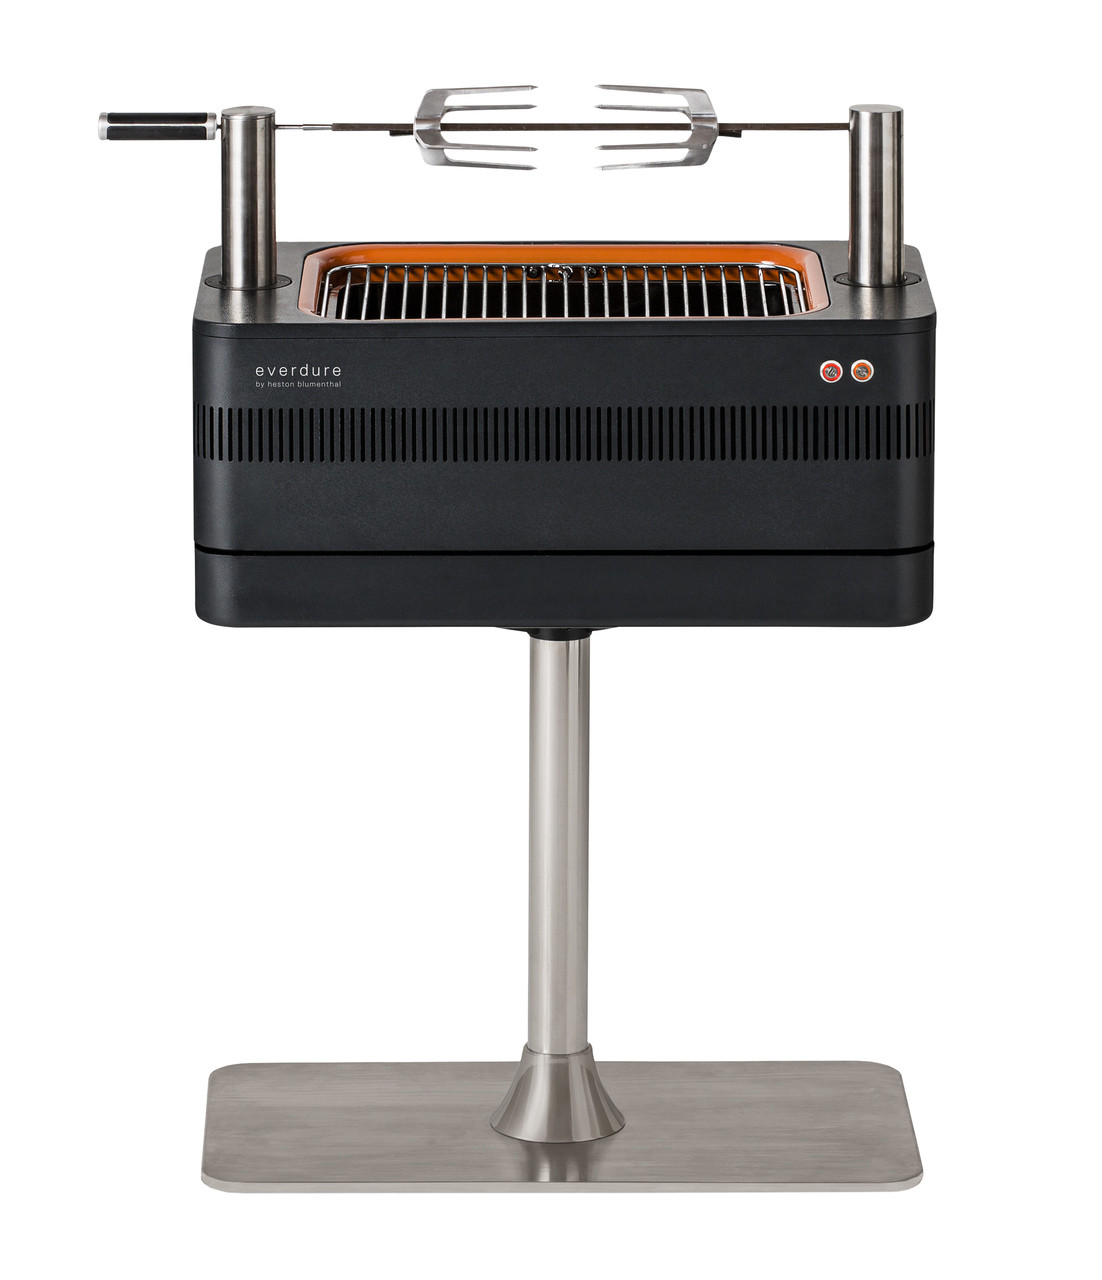 Everdure Fusion Charcoal & Electric BBQ - by Heston Blumenthal